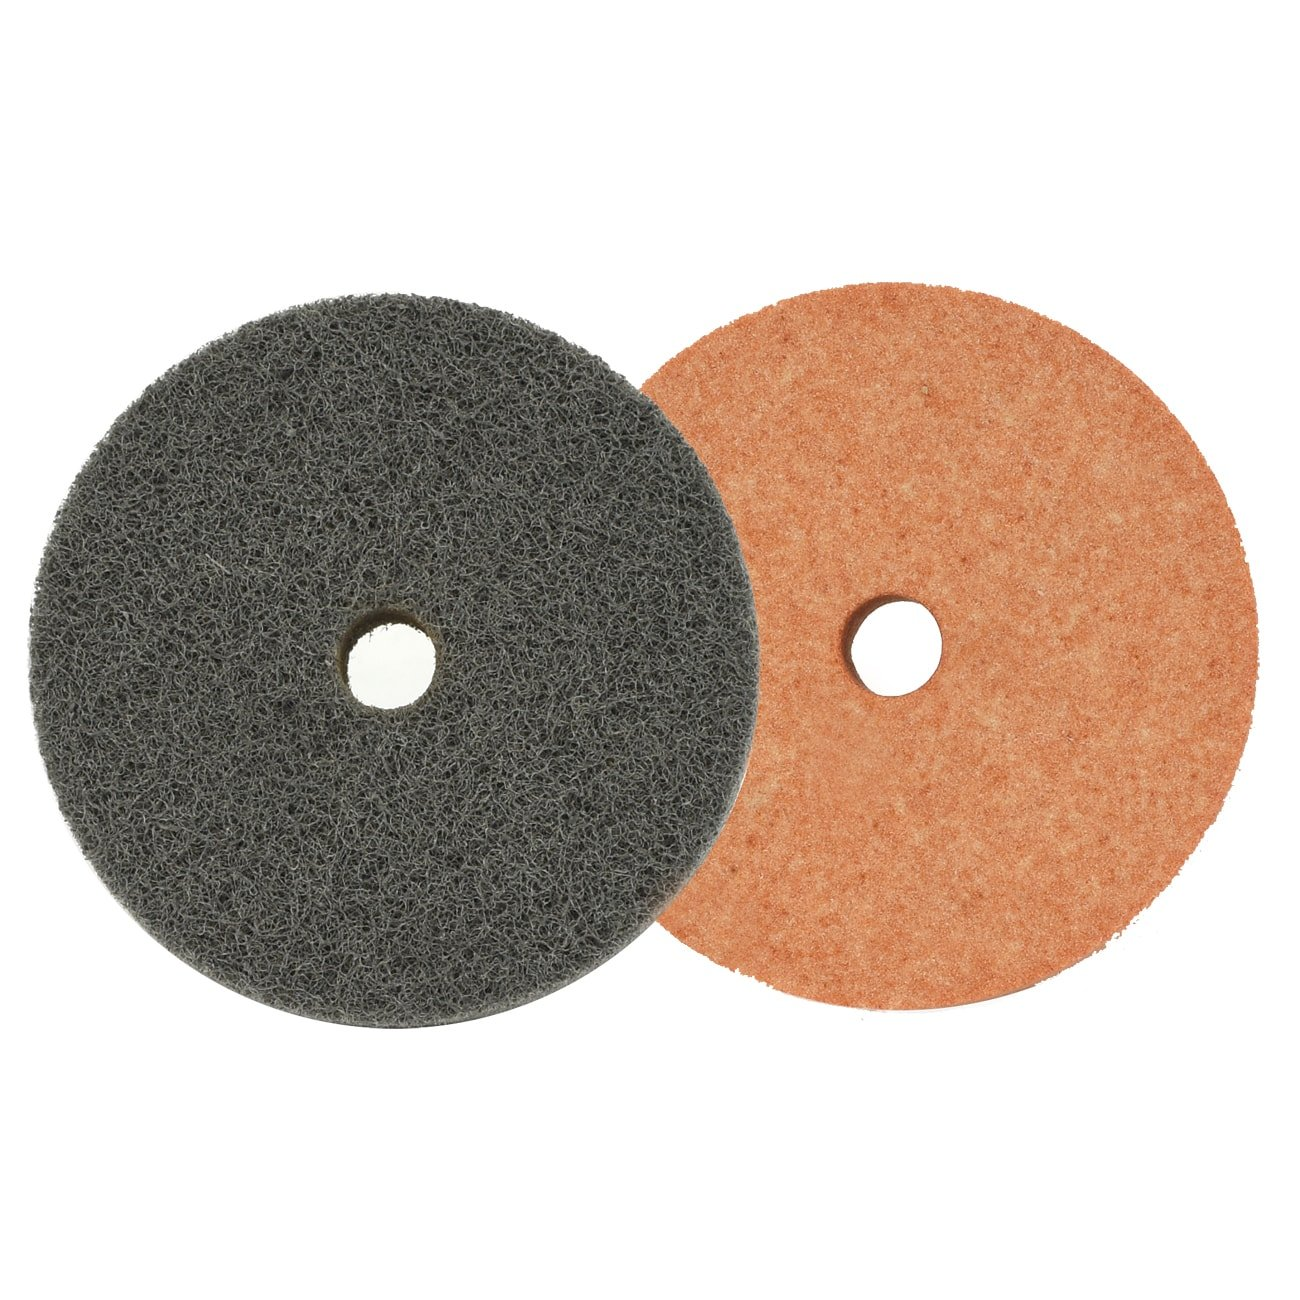 2-Piece Neiko 11057A Replacement Grinding and Fiber Wheel for 3-Inch Mini Grinder Bench